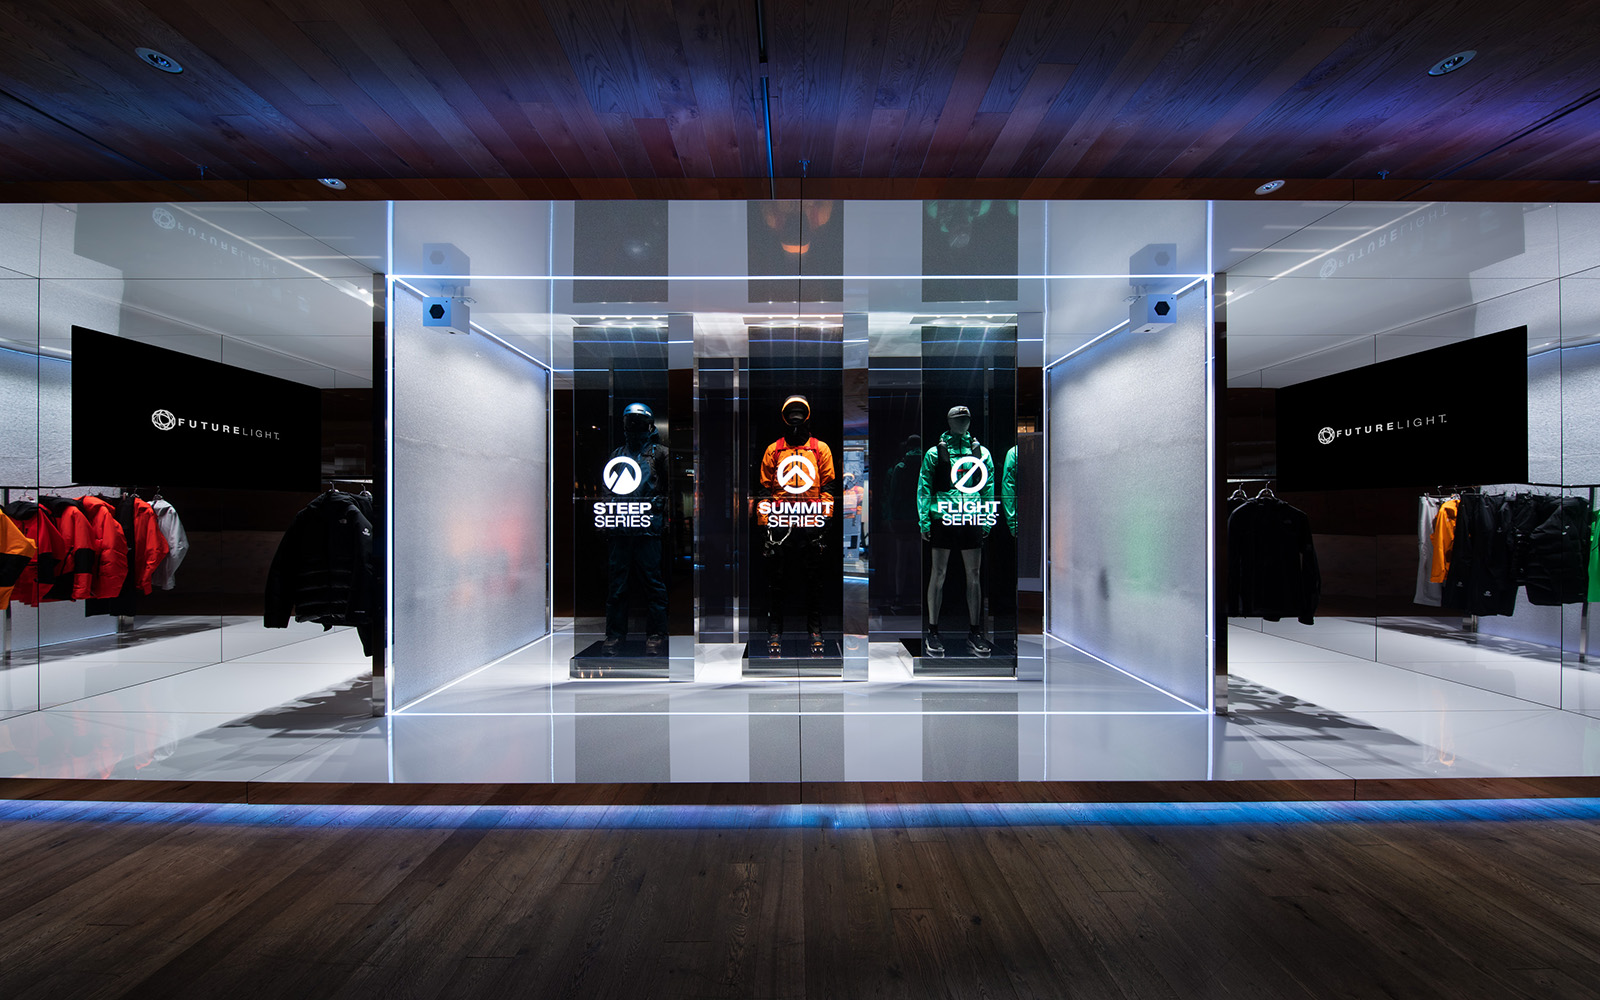 THE NORTH FACE FUTURELIGHT EXHIBITION